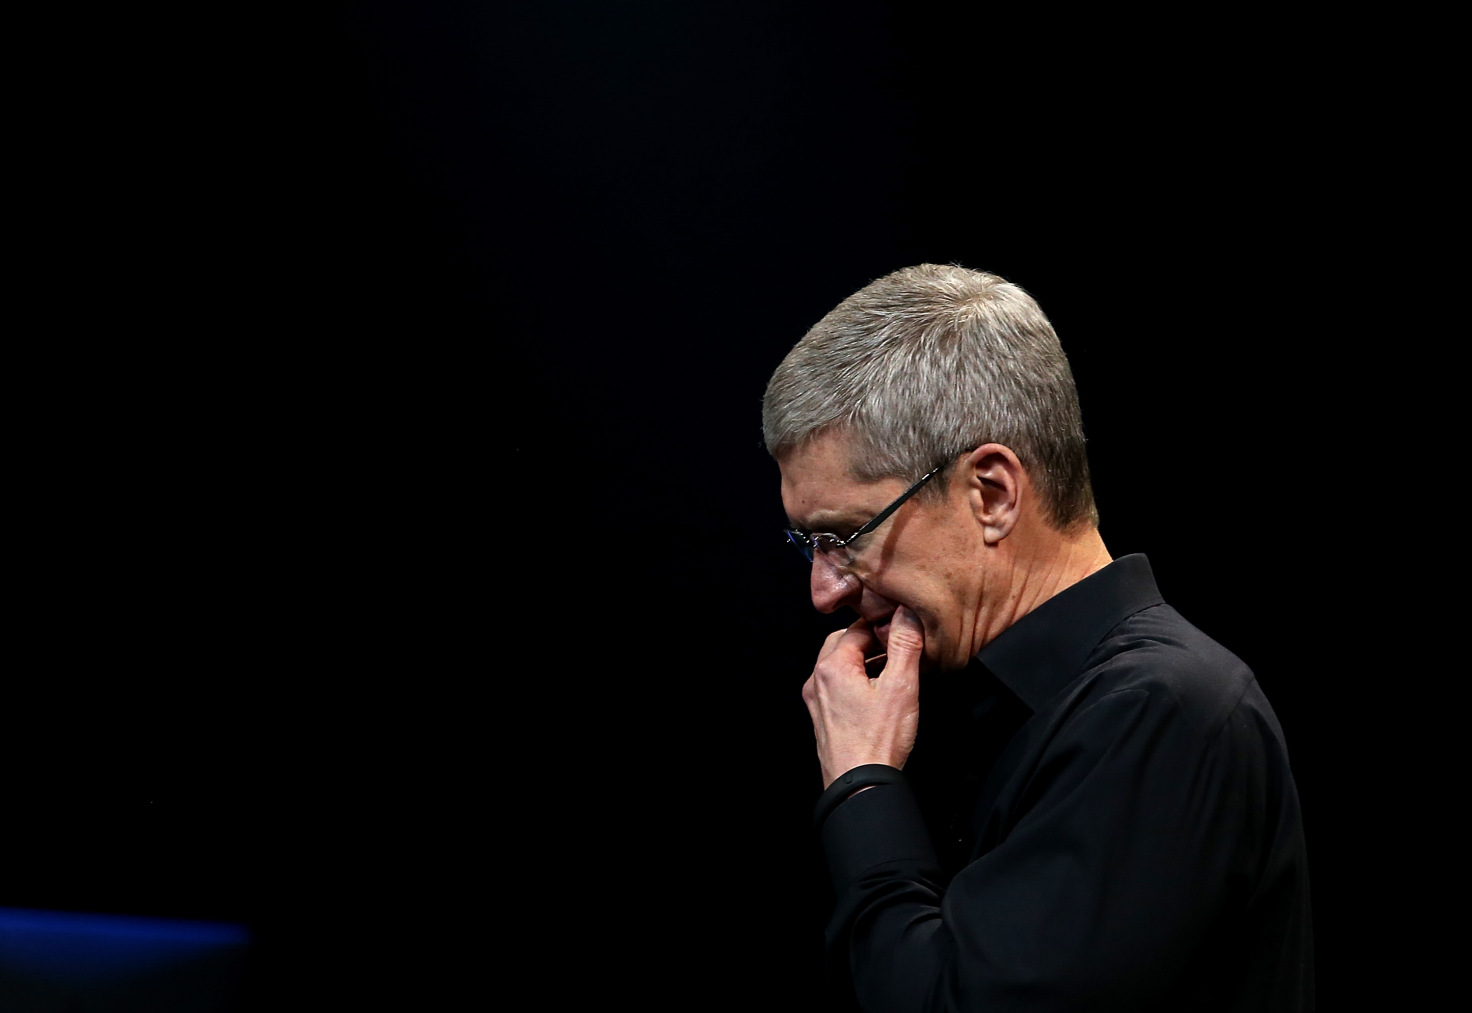 Apple's bid to become a $1 trillion company starts this week